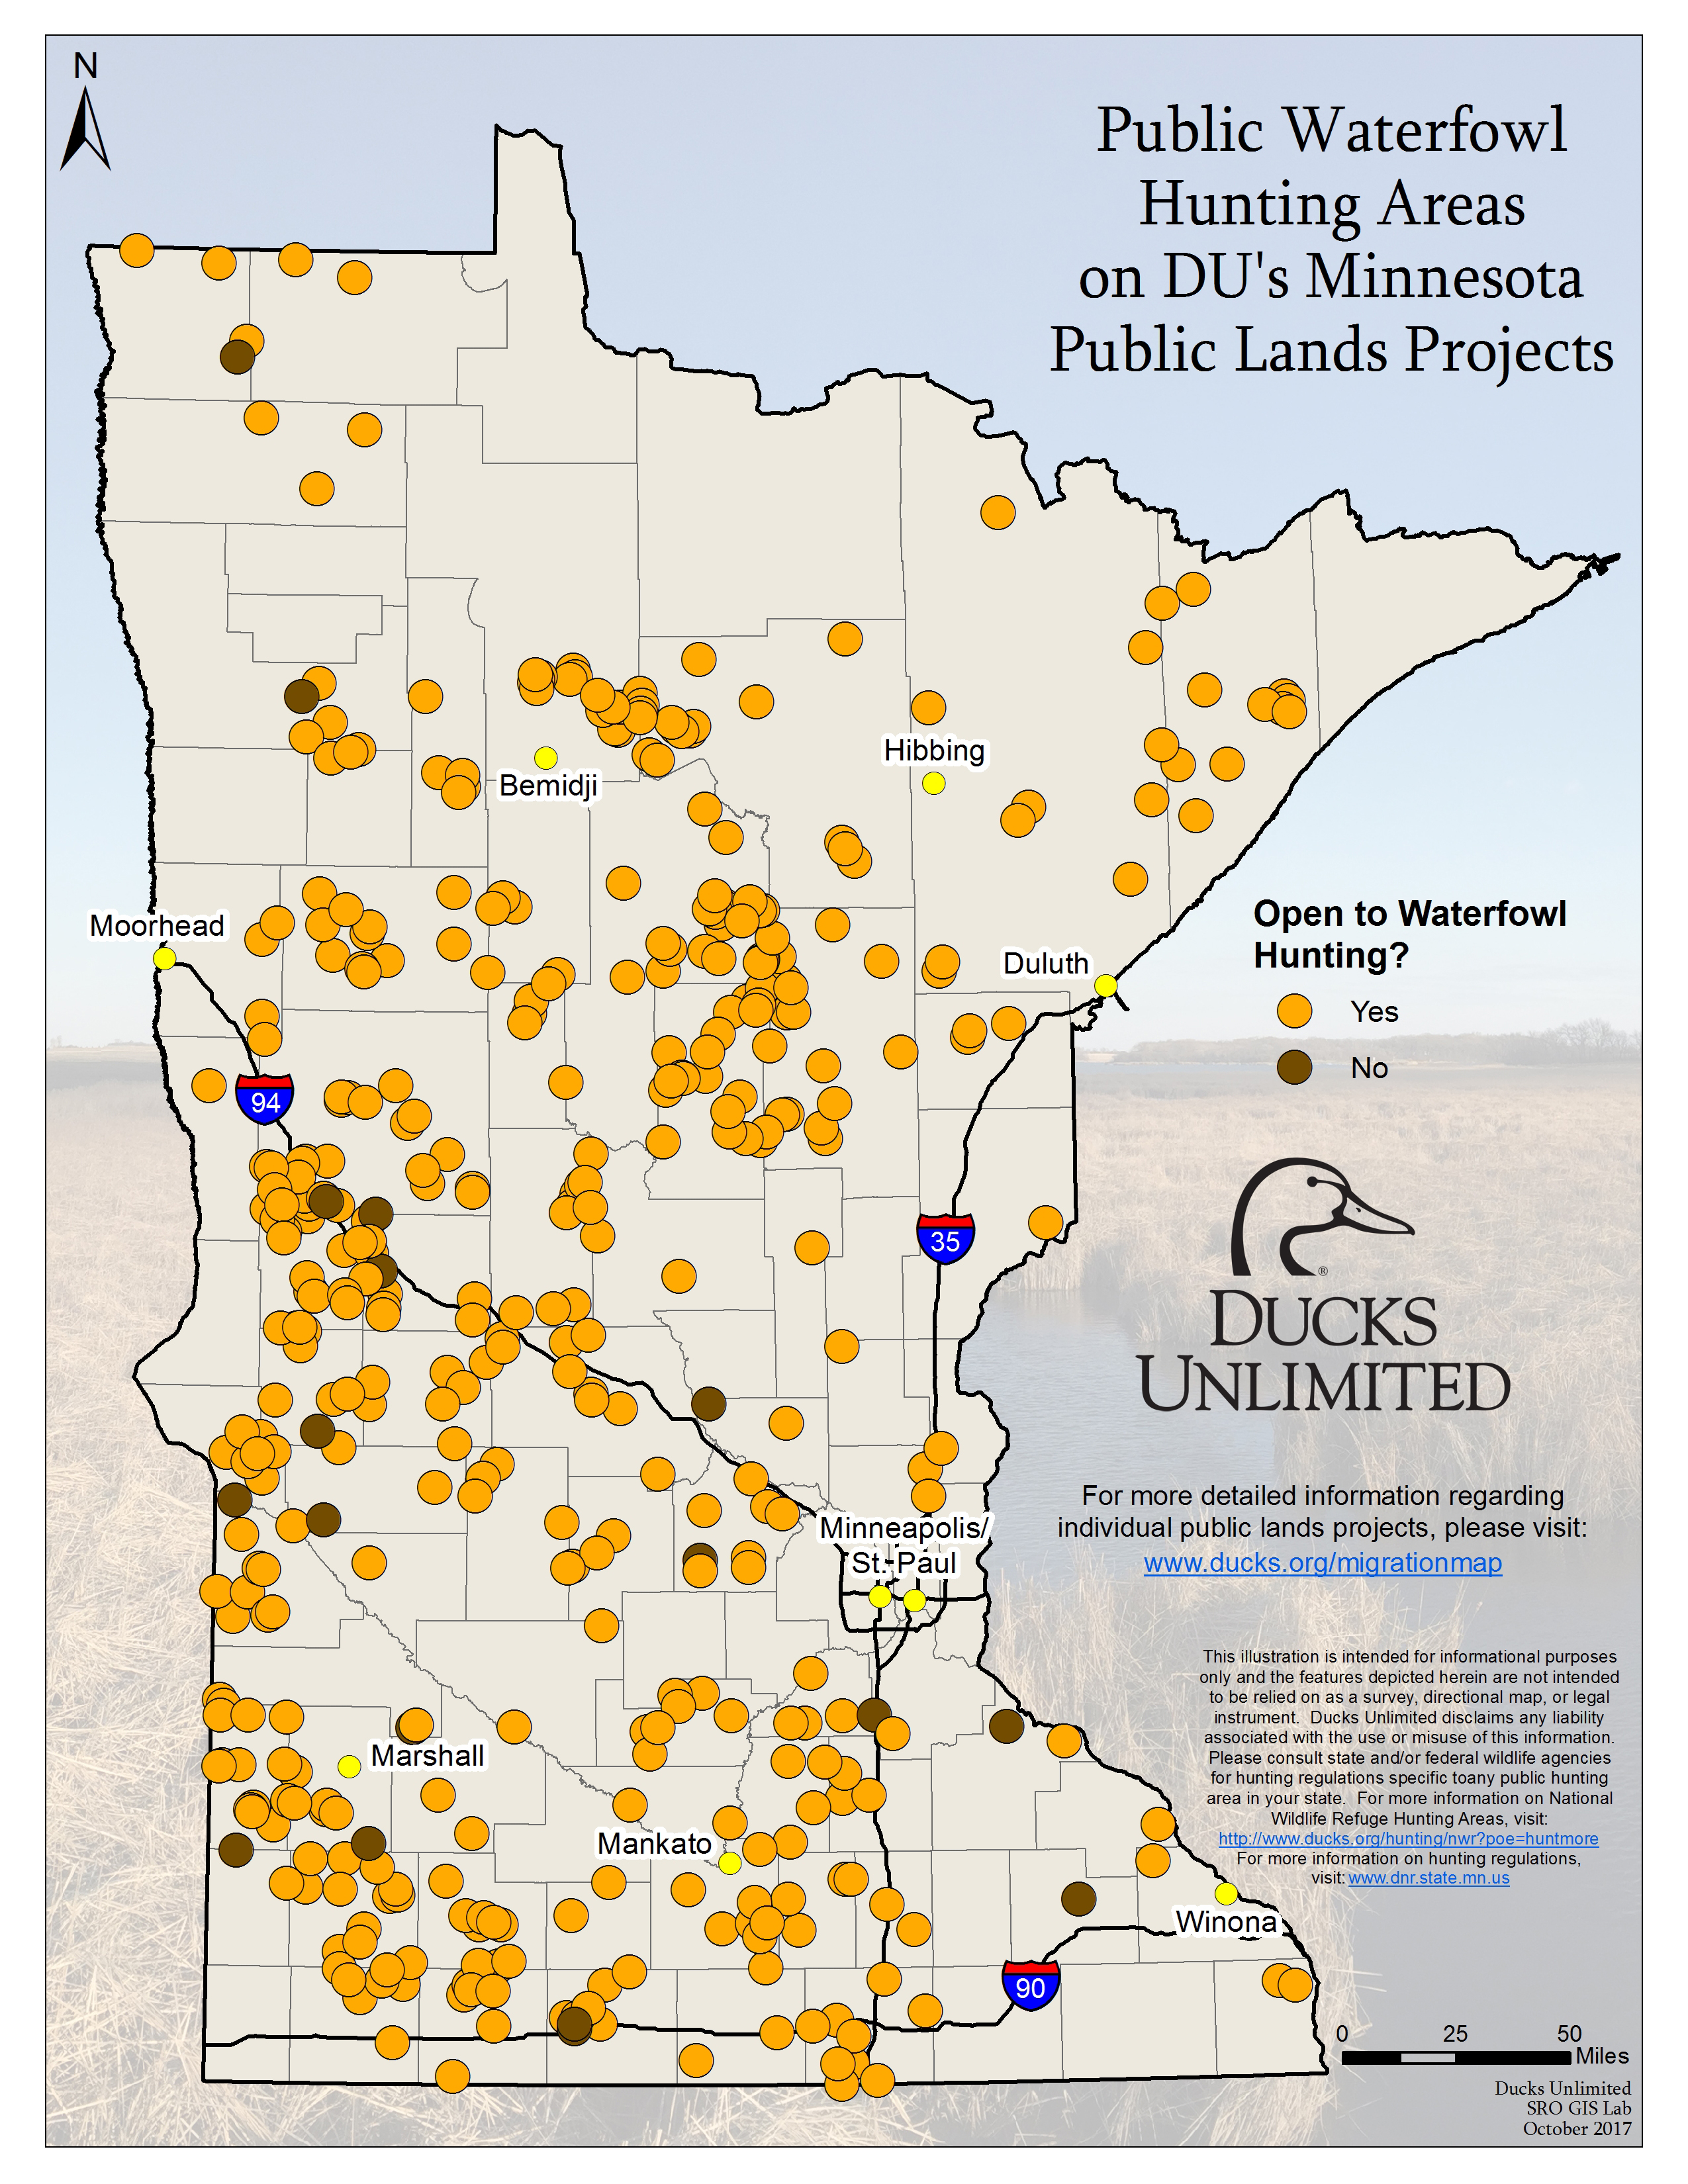 Public Waterfowl Hunting Areas on DU Public Lands Projects on